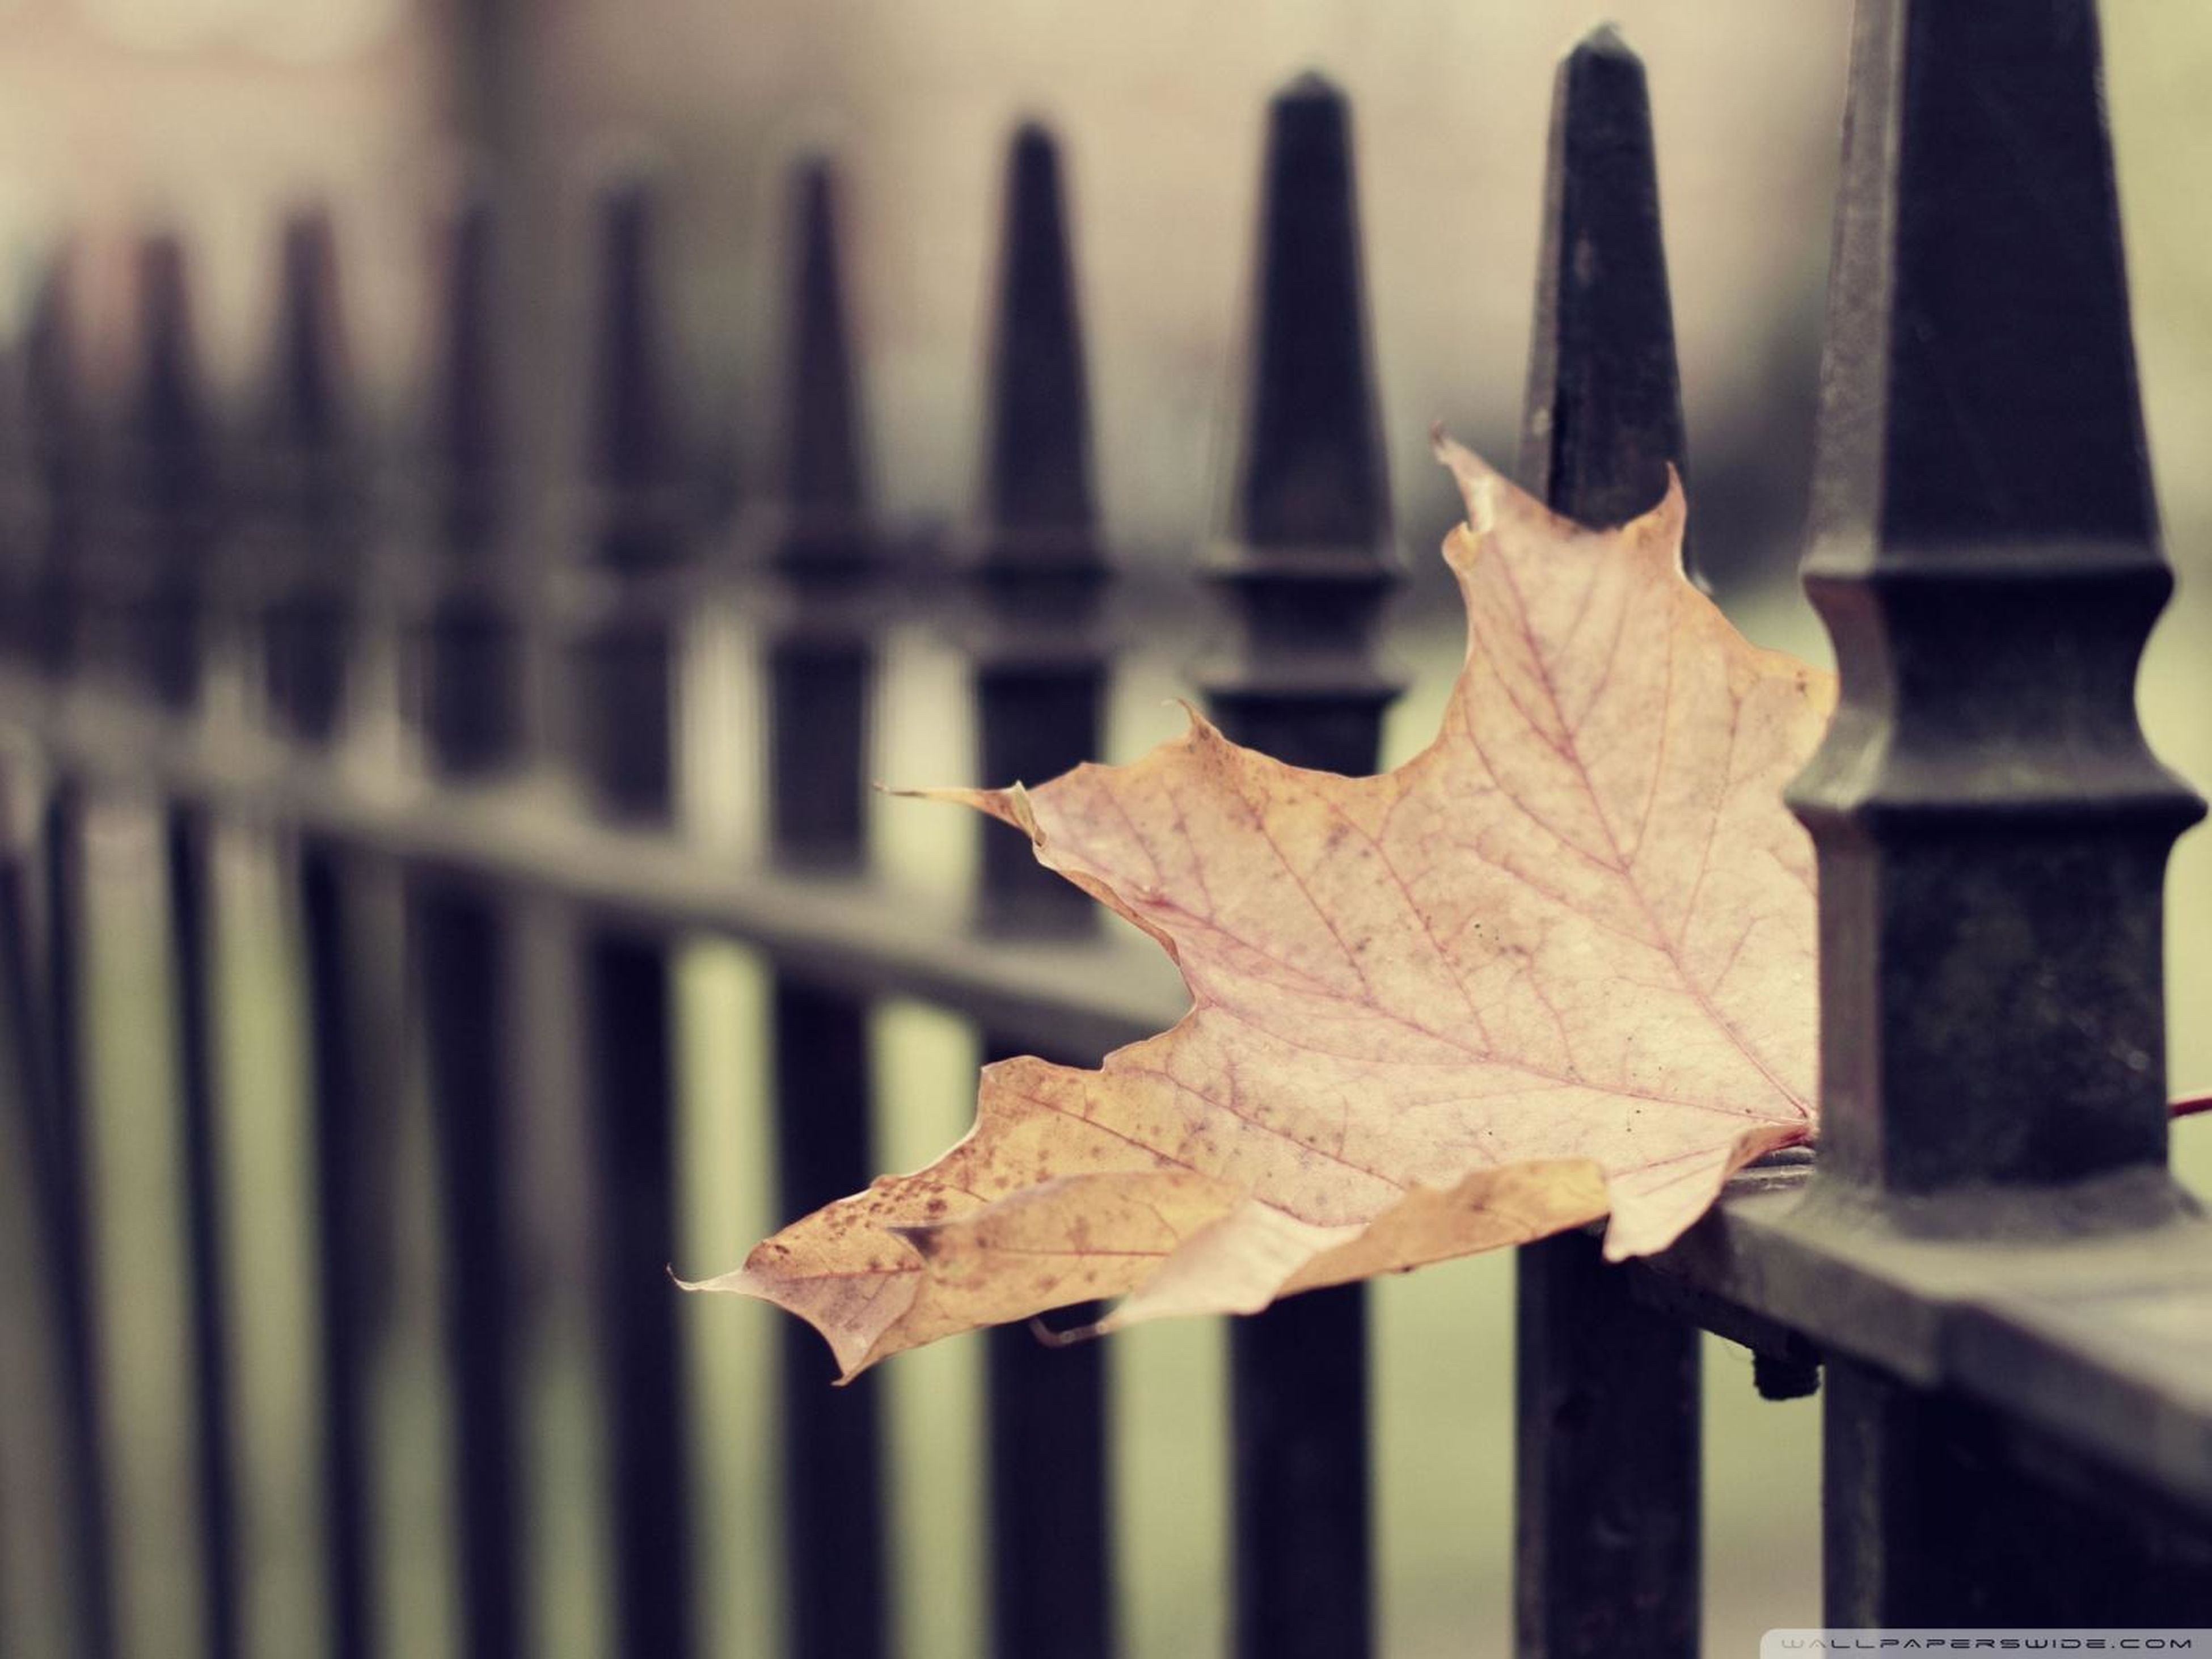 focus on foreground, close-up, wood - material, metal, fence, selective focus, wooden, protection, season, metallic, day, outdoors, railing, wood, in a row, no people, pattern, autumn, safety, leaf